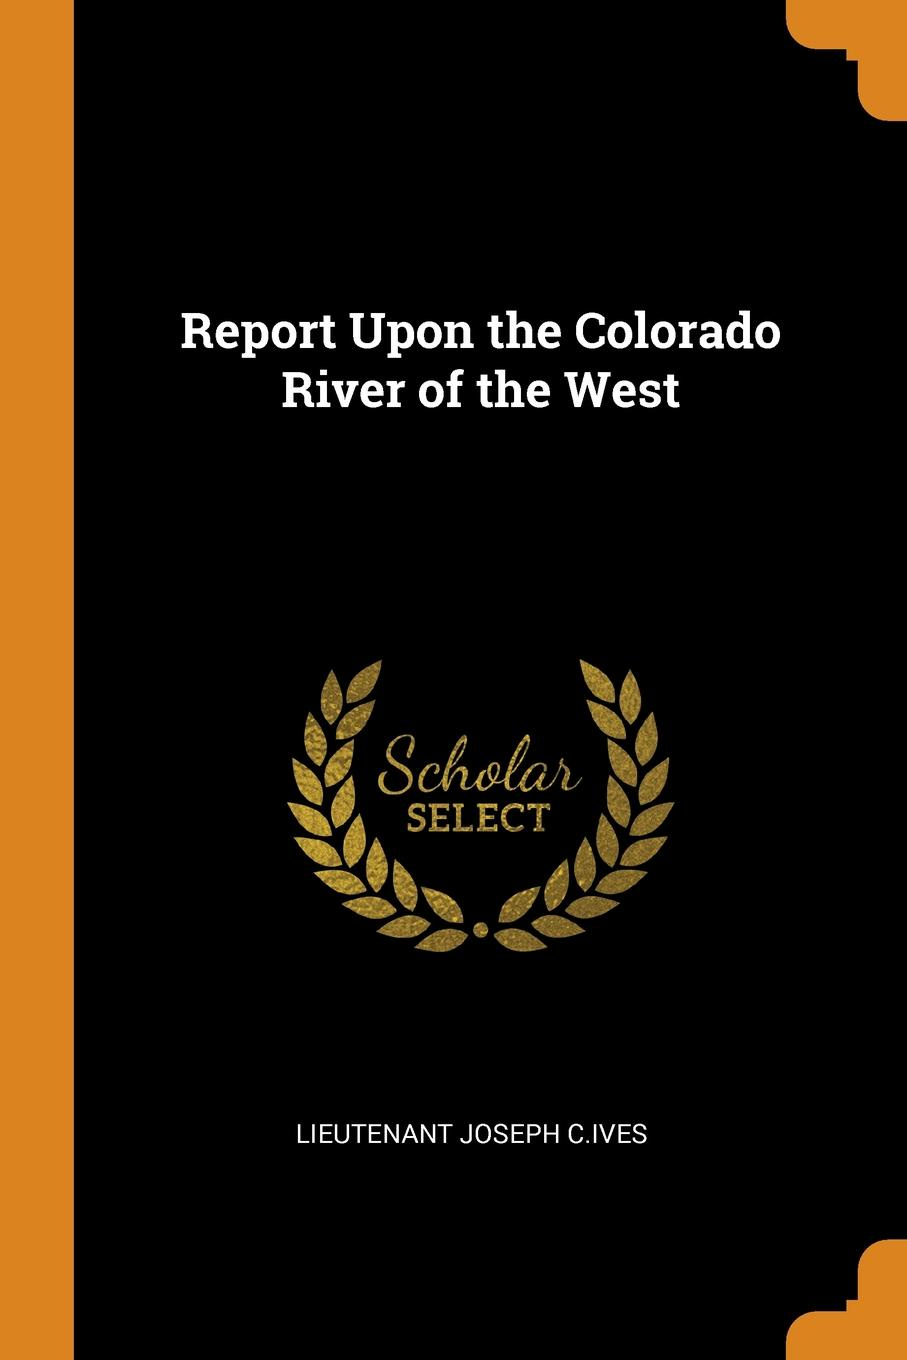 Lieutenant Joseph C.Ives Report Upon the Colorado River of the West